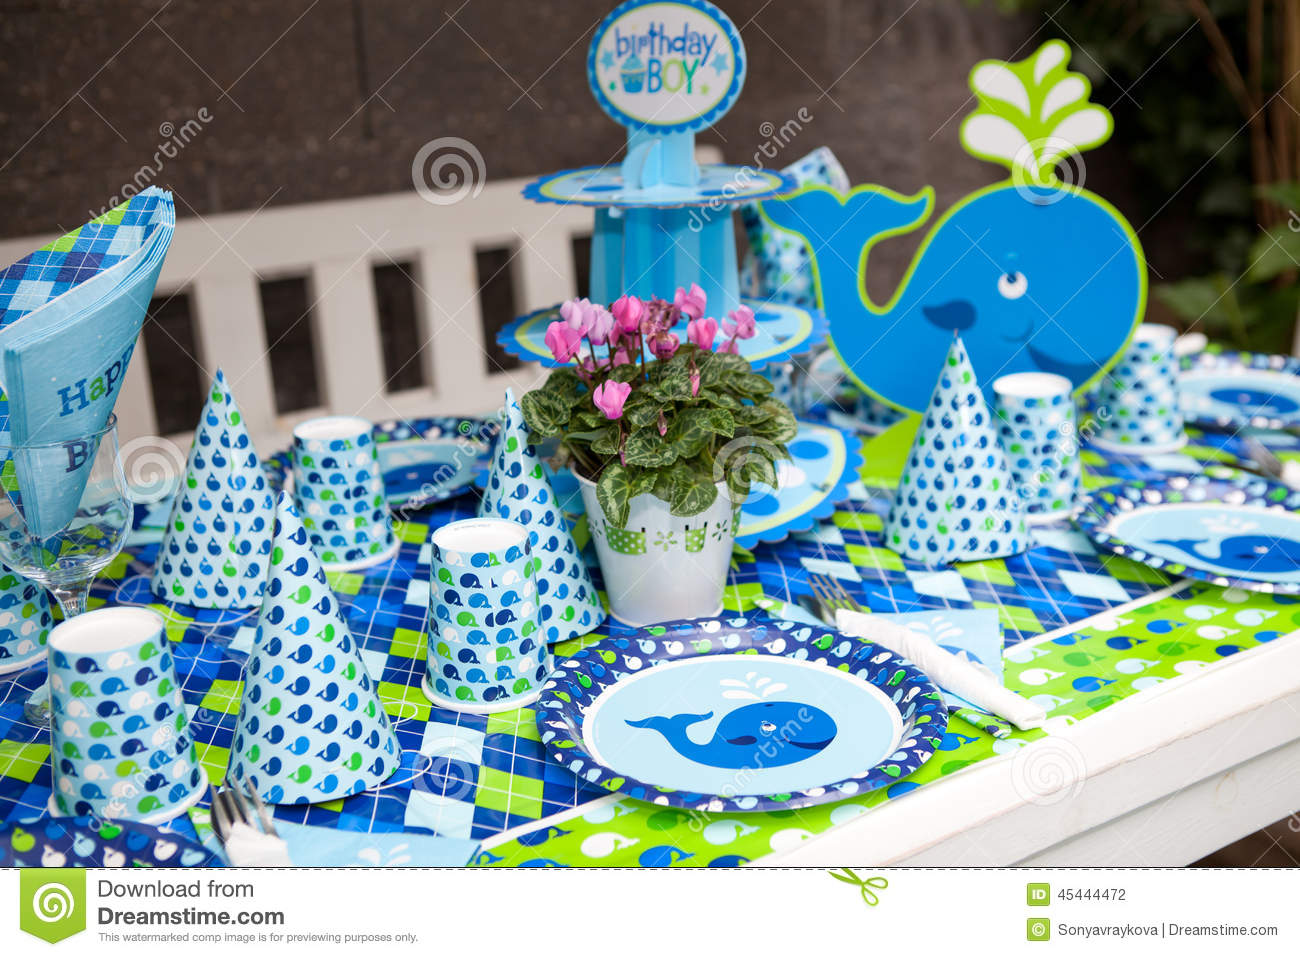 first baby boy birthday picture ideas ; baby-boy-first-birthday-party-outdoor-table-set-marine-theme-45444472